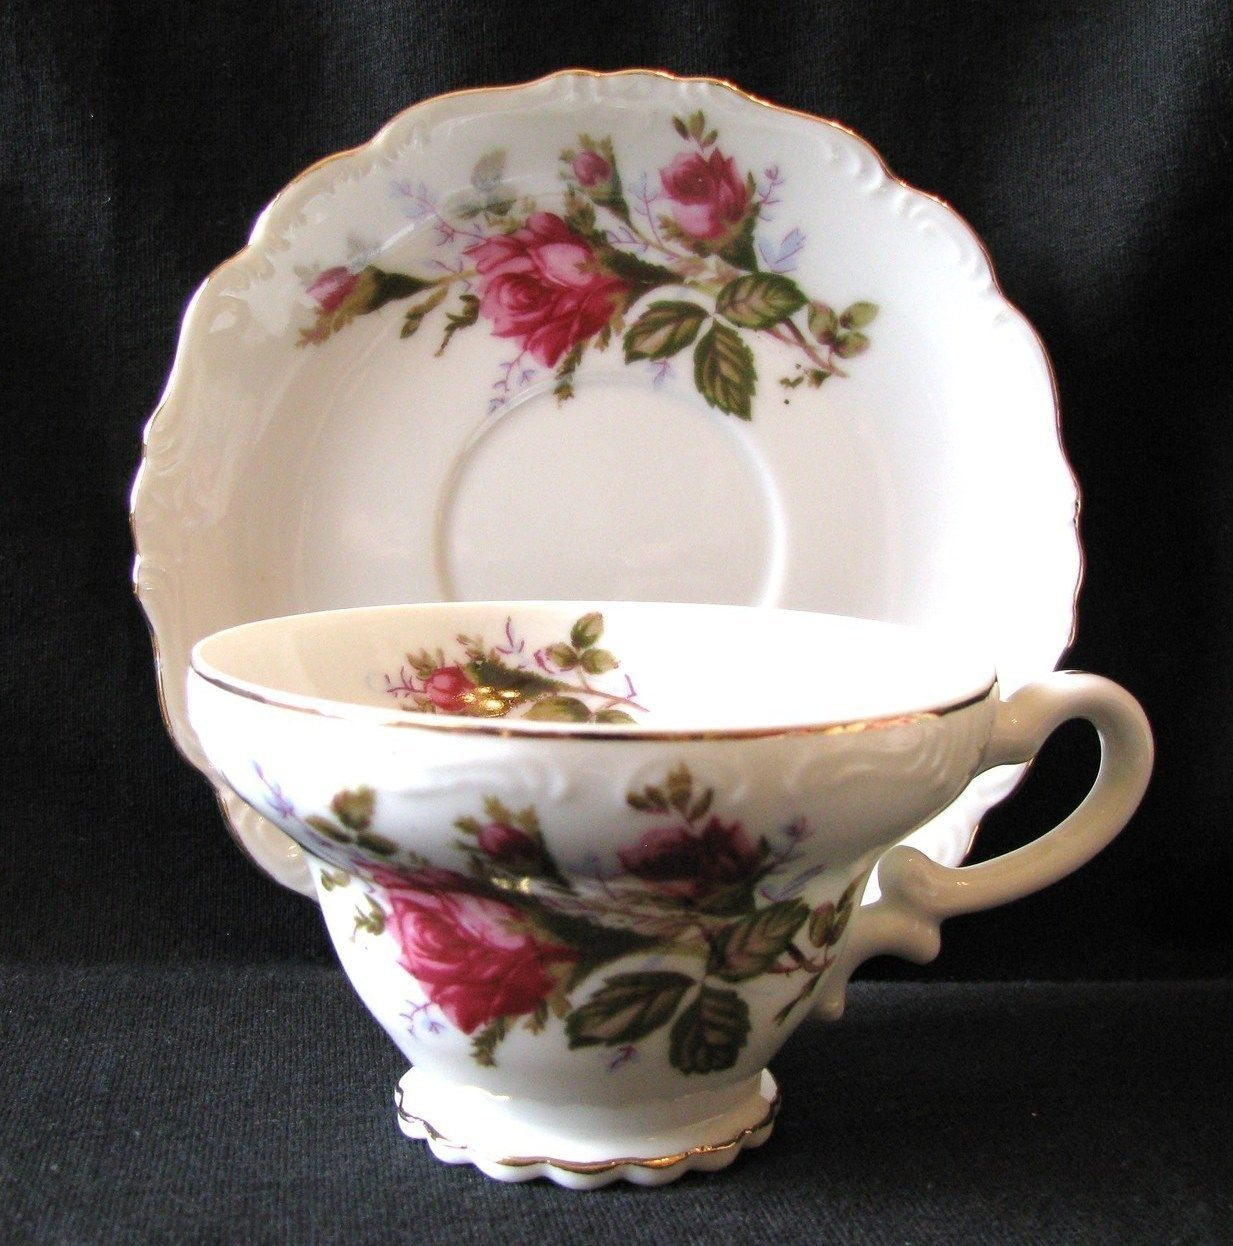 Vintage Royal Sealy footed tea cup and saucer in the Moss